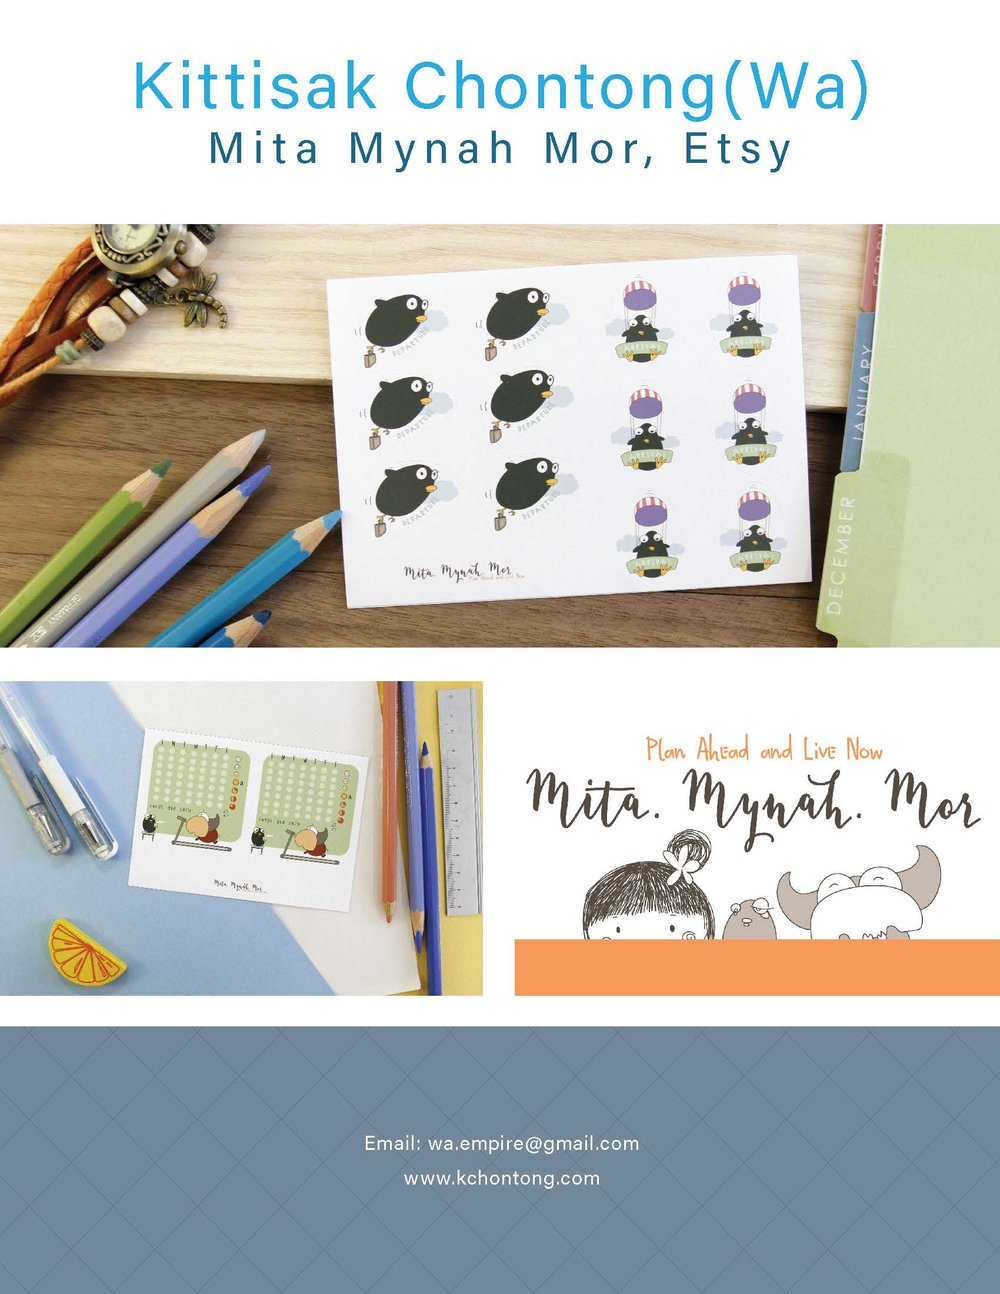 Designed for Mita.Mynah.Mor Planner Sticker on Etsy